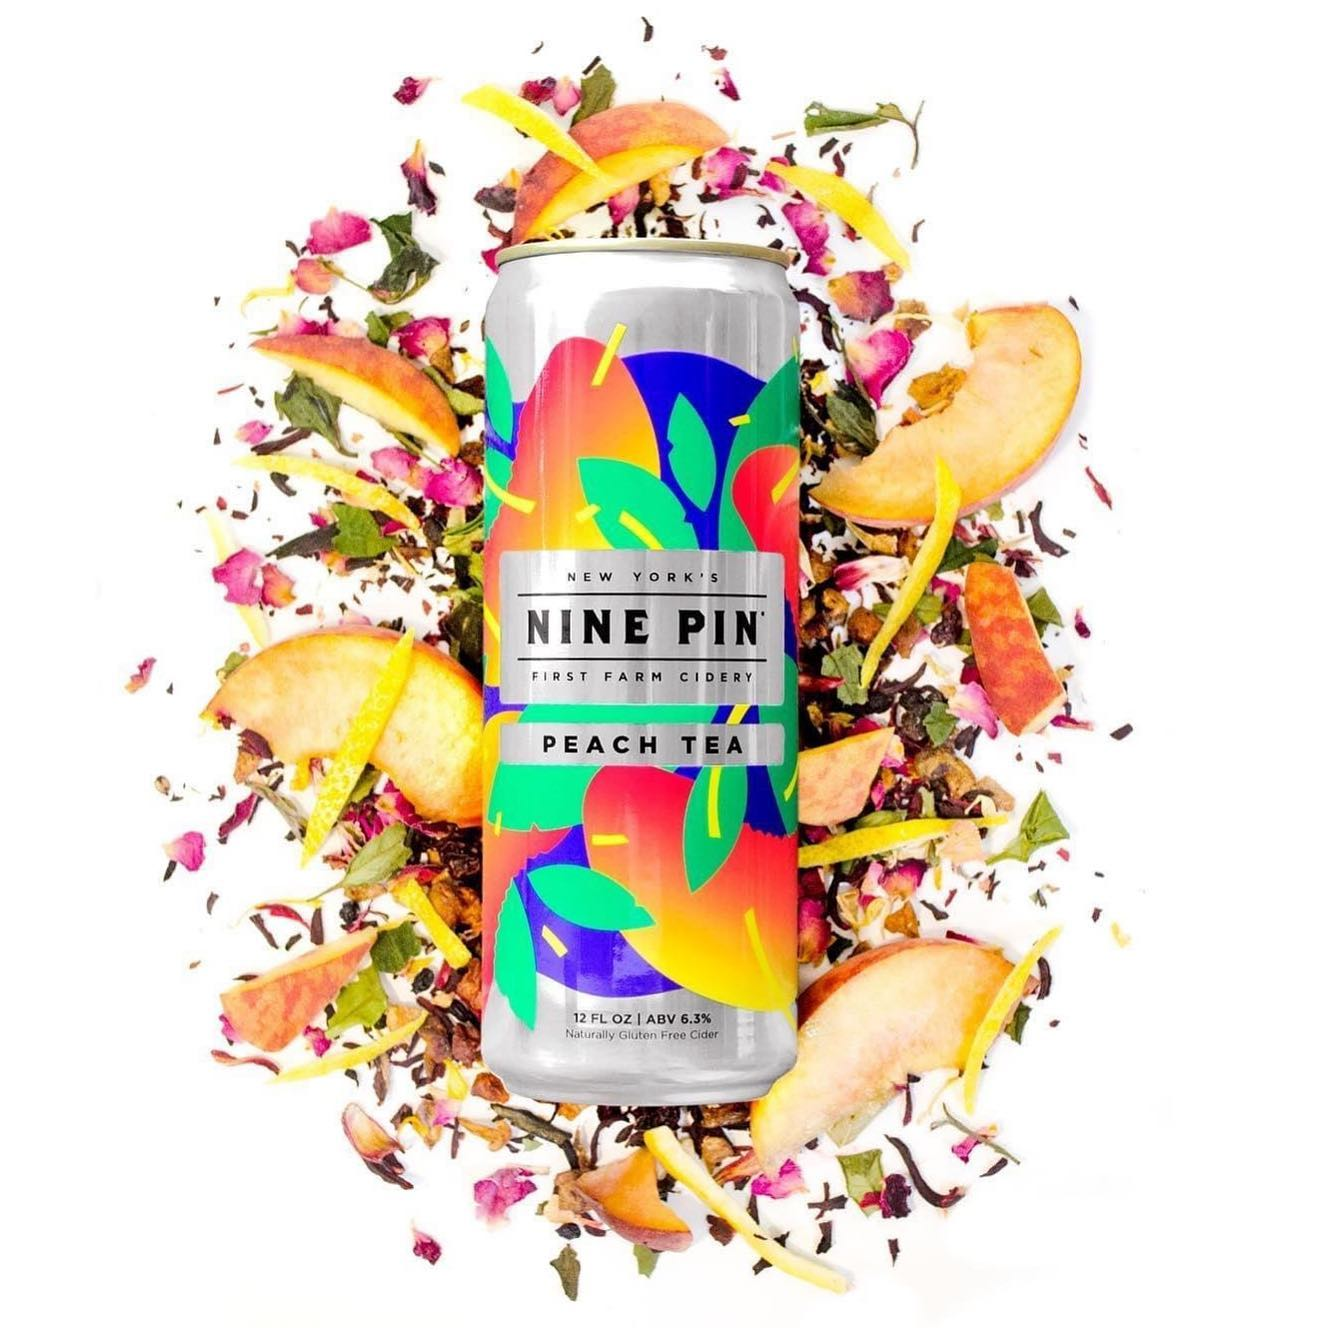 Bright and color full Nine Pin Cider can laying on peach slices and peach tea